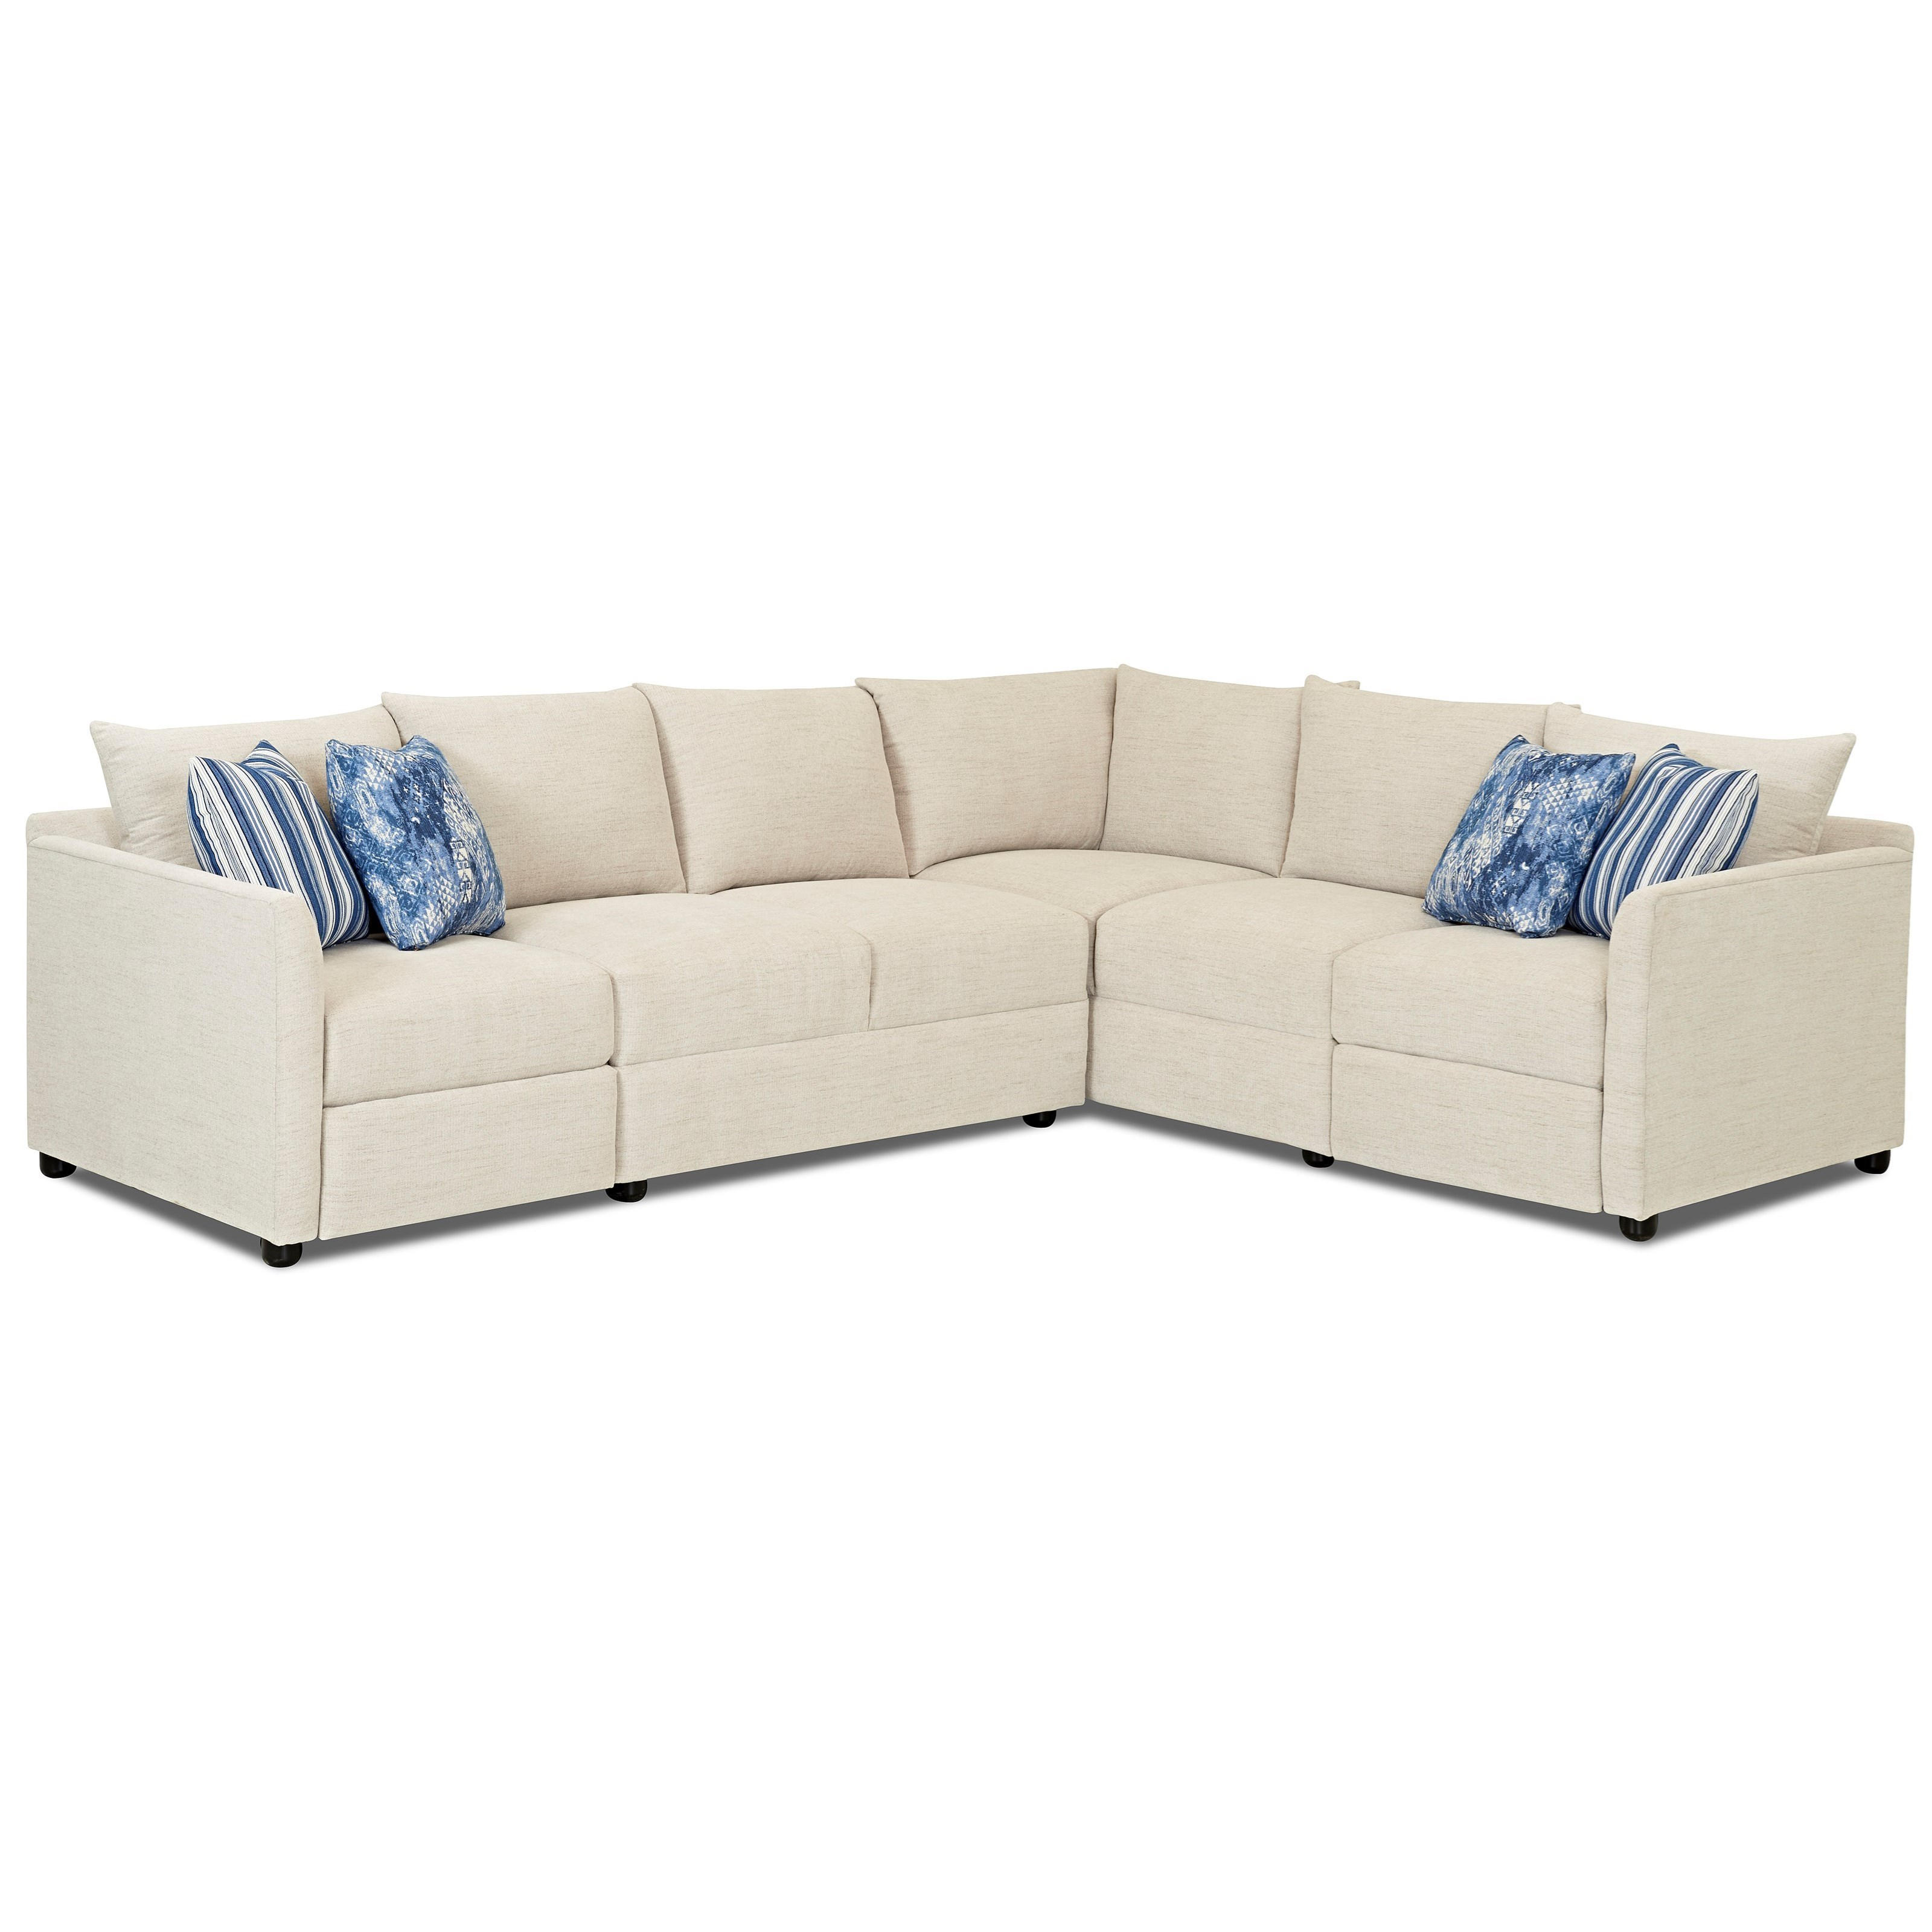 sofas in atlanta small pull out sofa bed trisha yearwood home collection by klaussner two piece power hybrid reclining sectional with raf corner